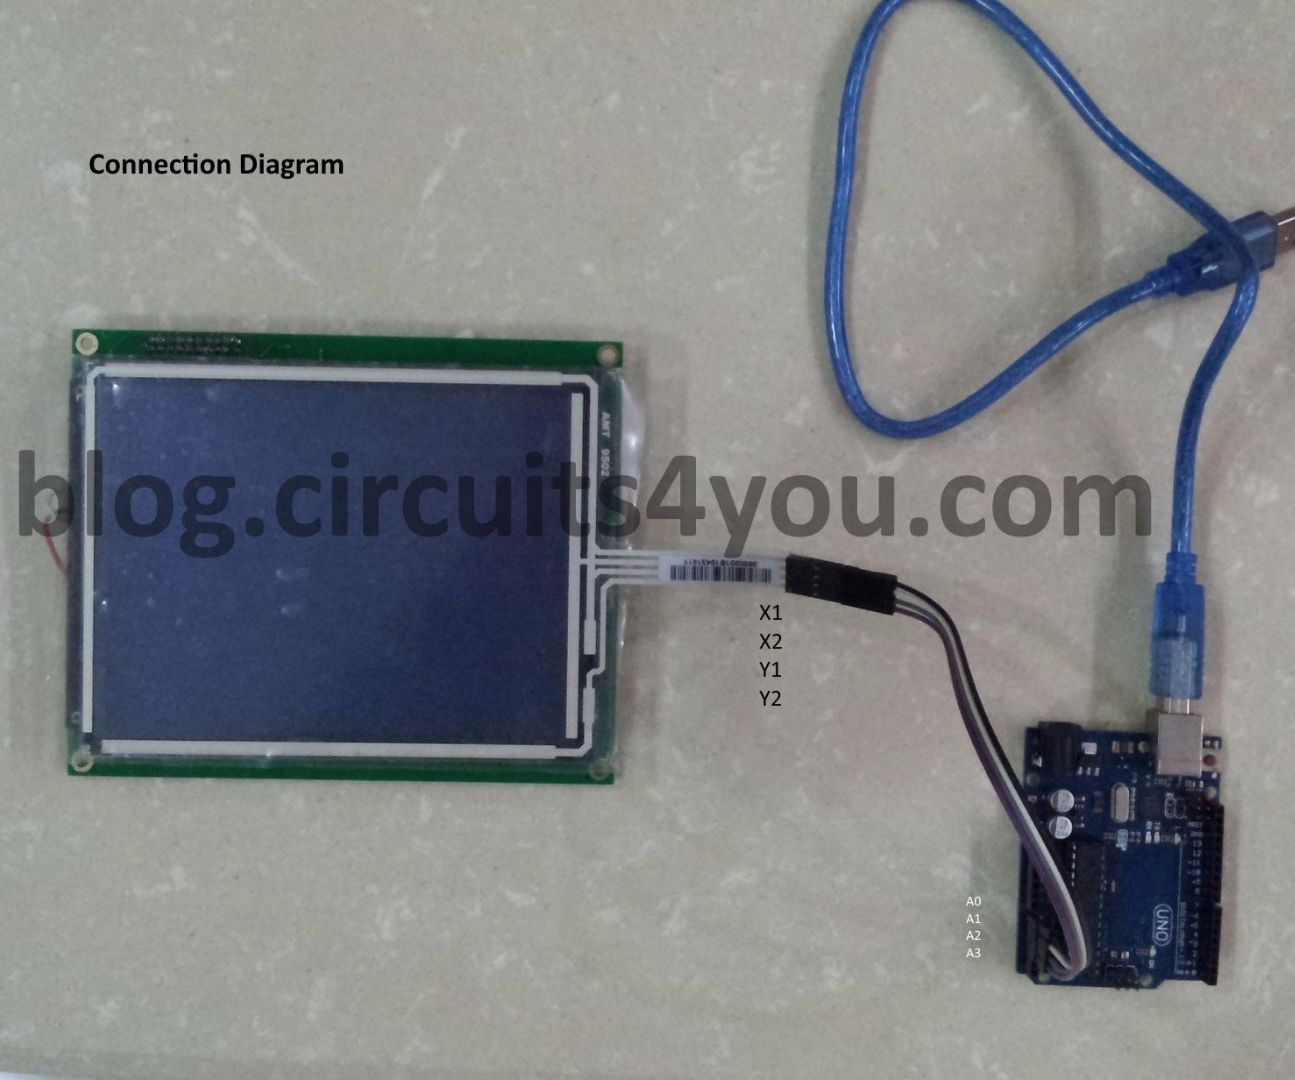 4 Wire Touch Screen Interfacing With Arduino 3 Steps 74hc4051 Multiplexing And Voltage Divider Electrical